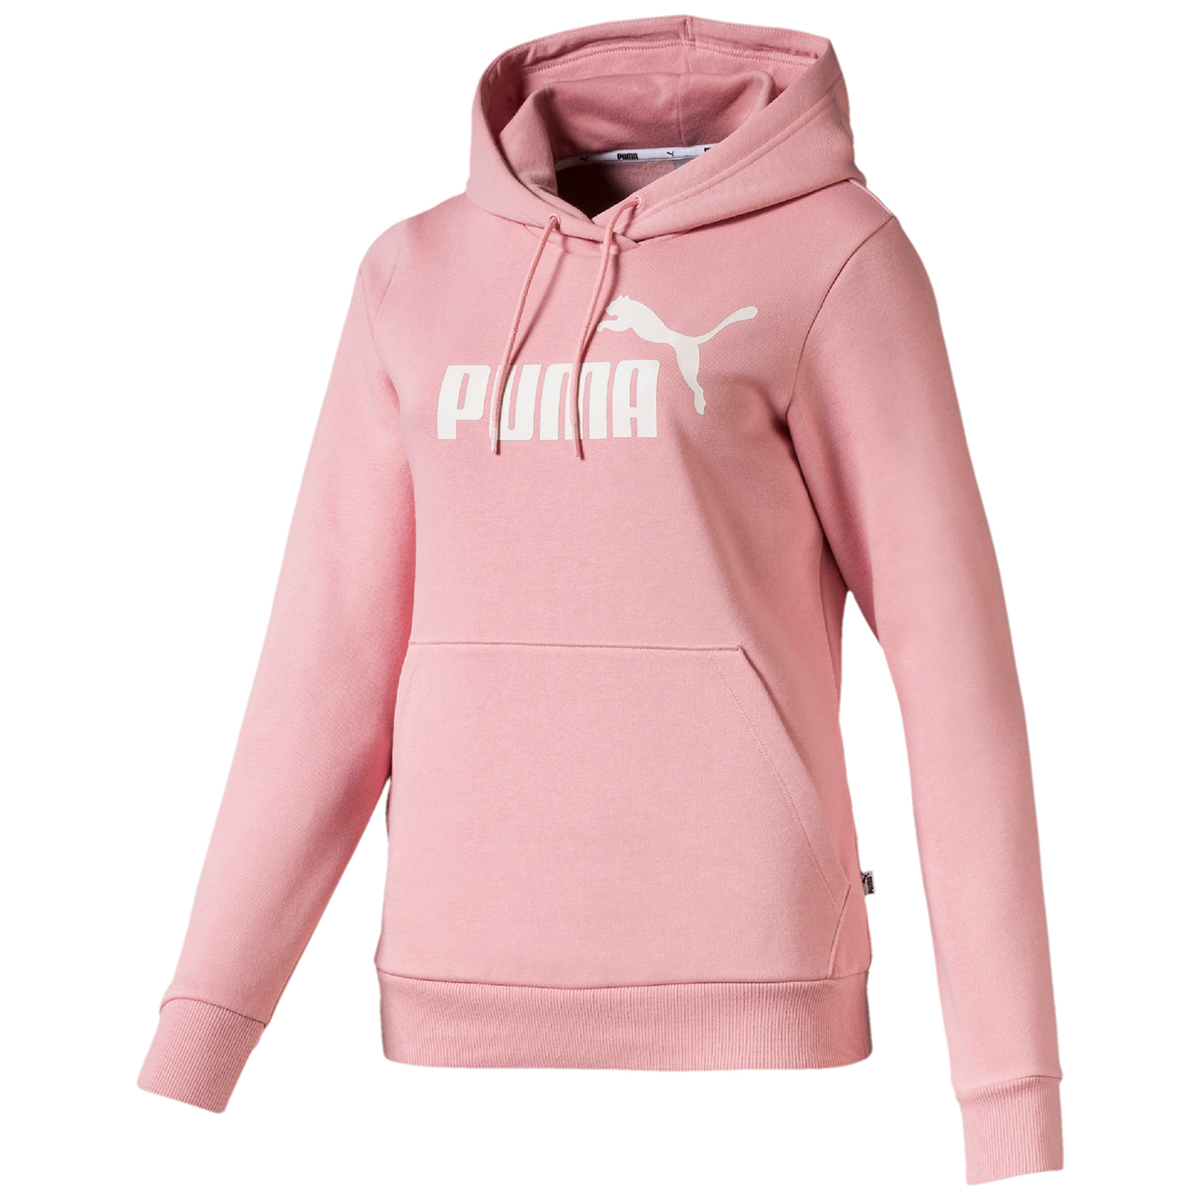 Puma Women's Essential Fleece Hoodie - Red, XL